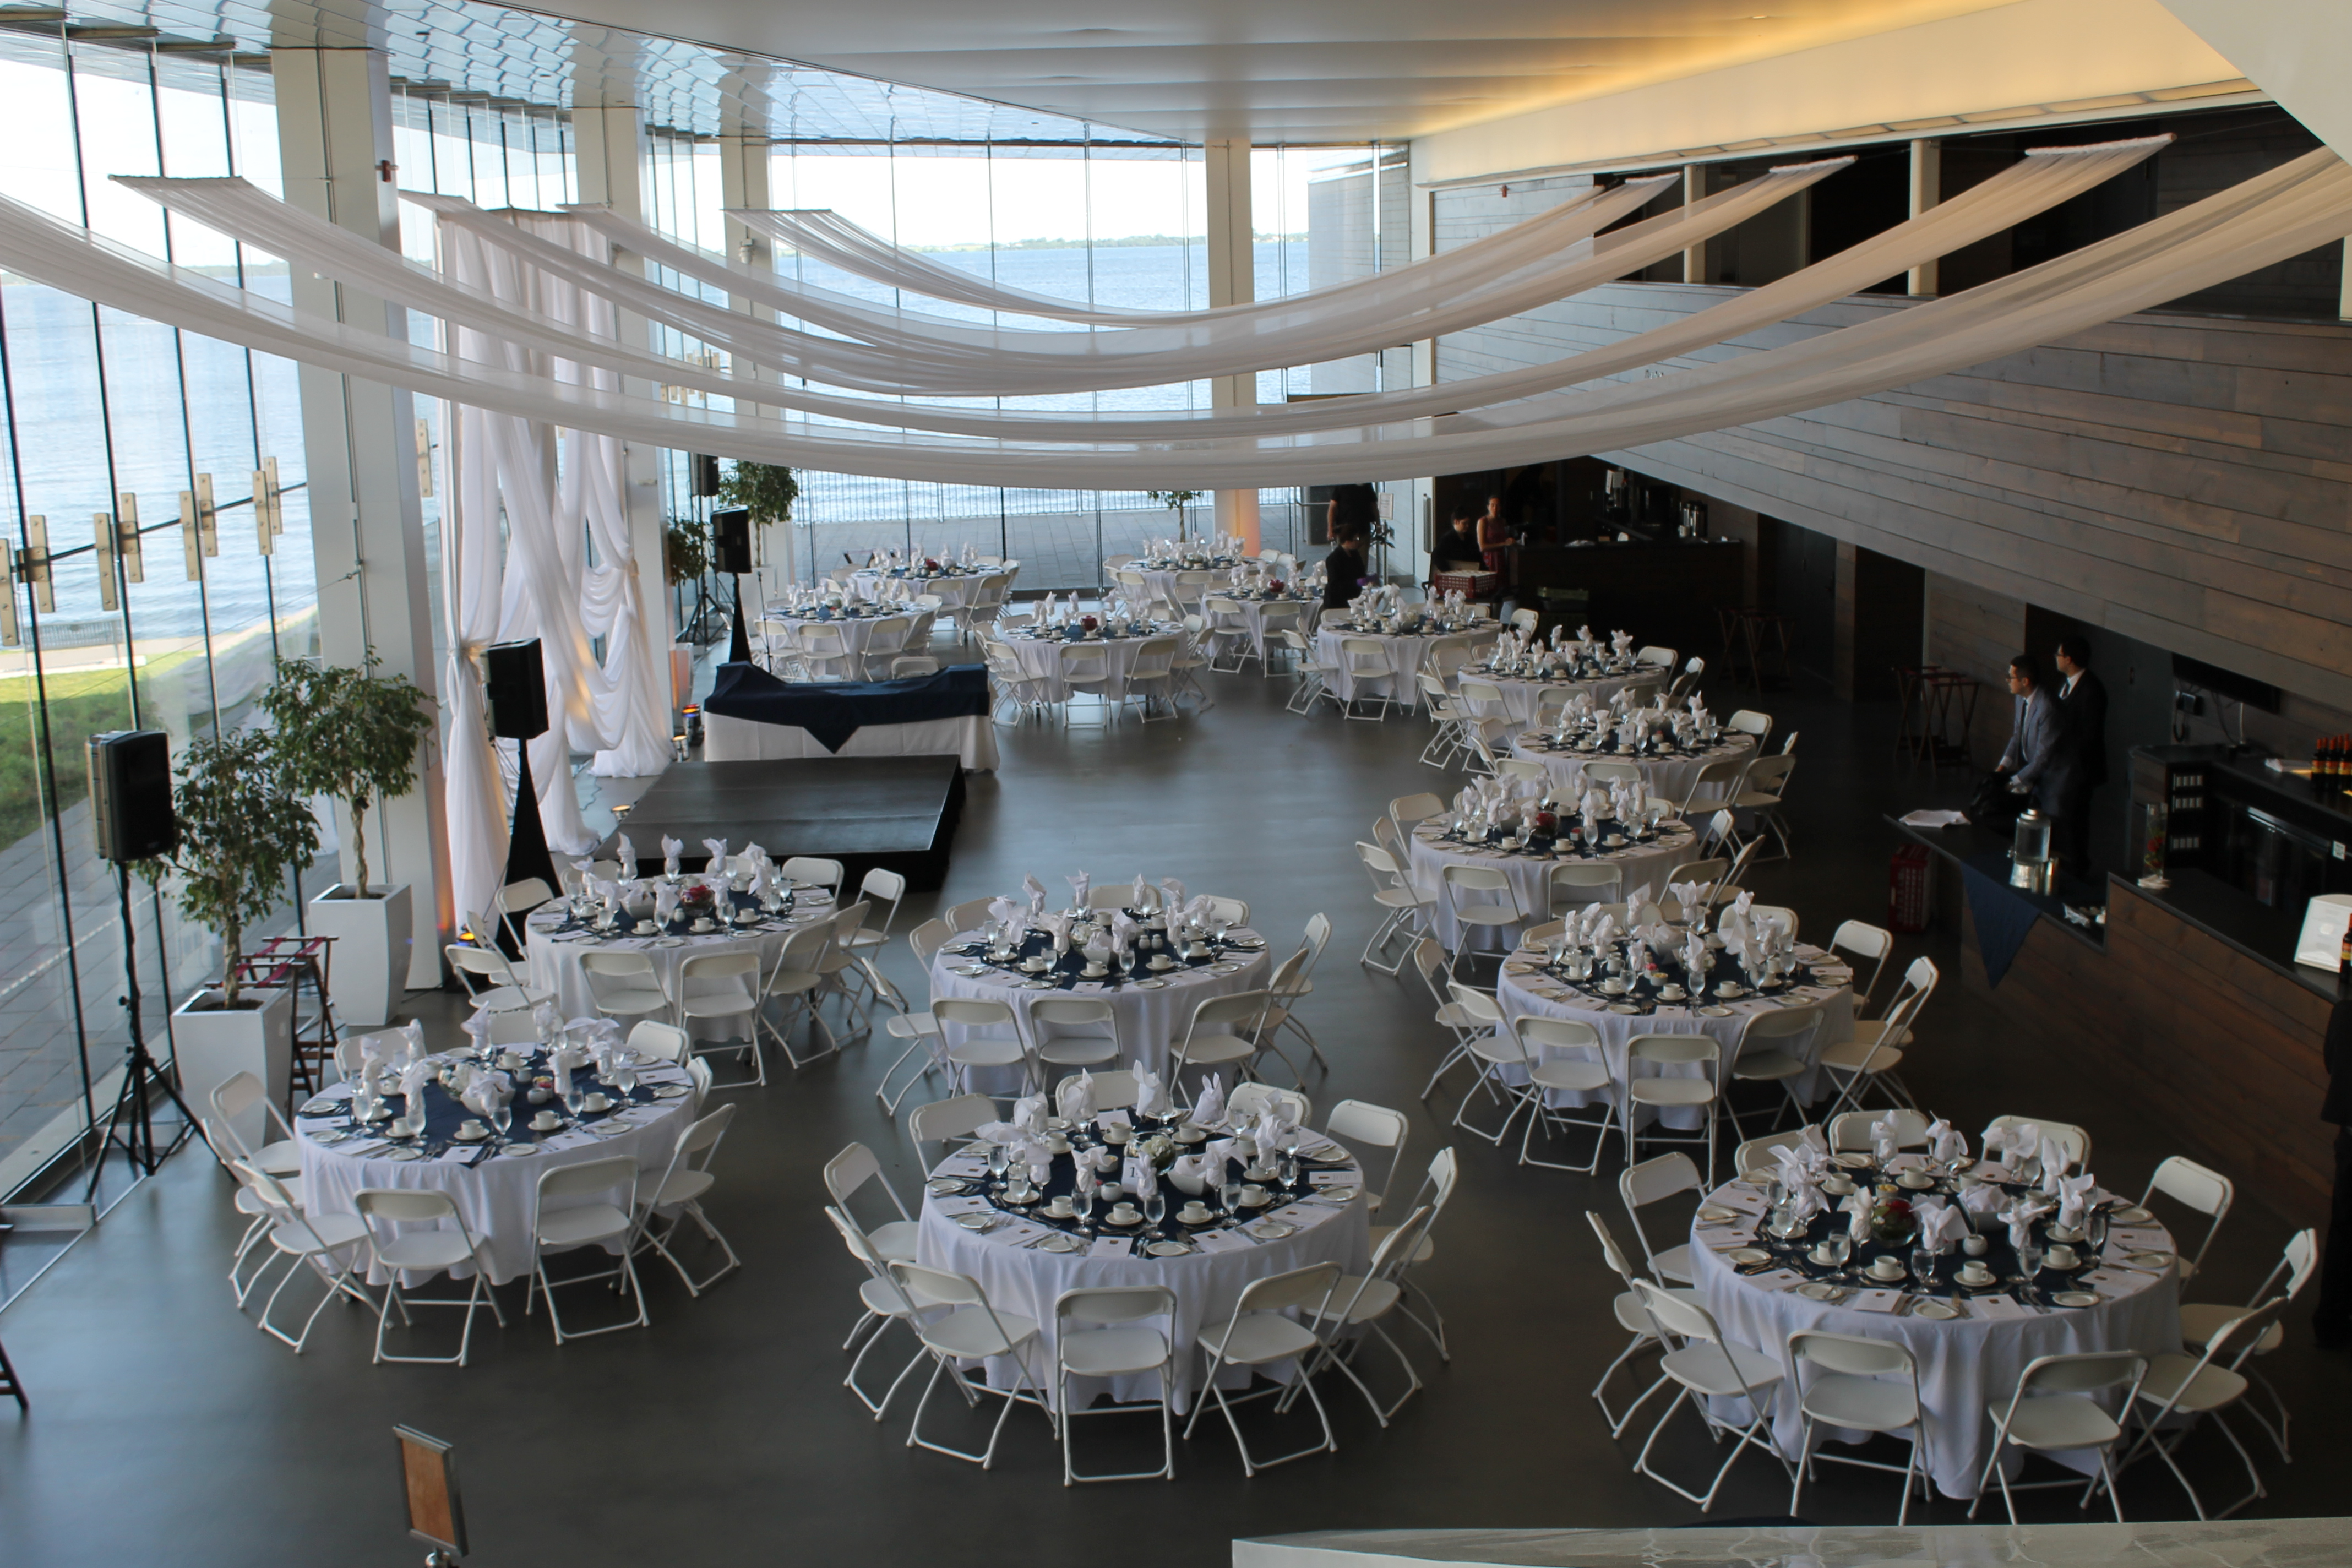 Overview                                                    -                            Last Call Ball is hosted annually at the beautiful waterfront Isable Bader Centre